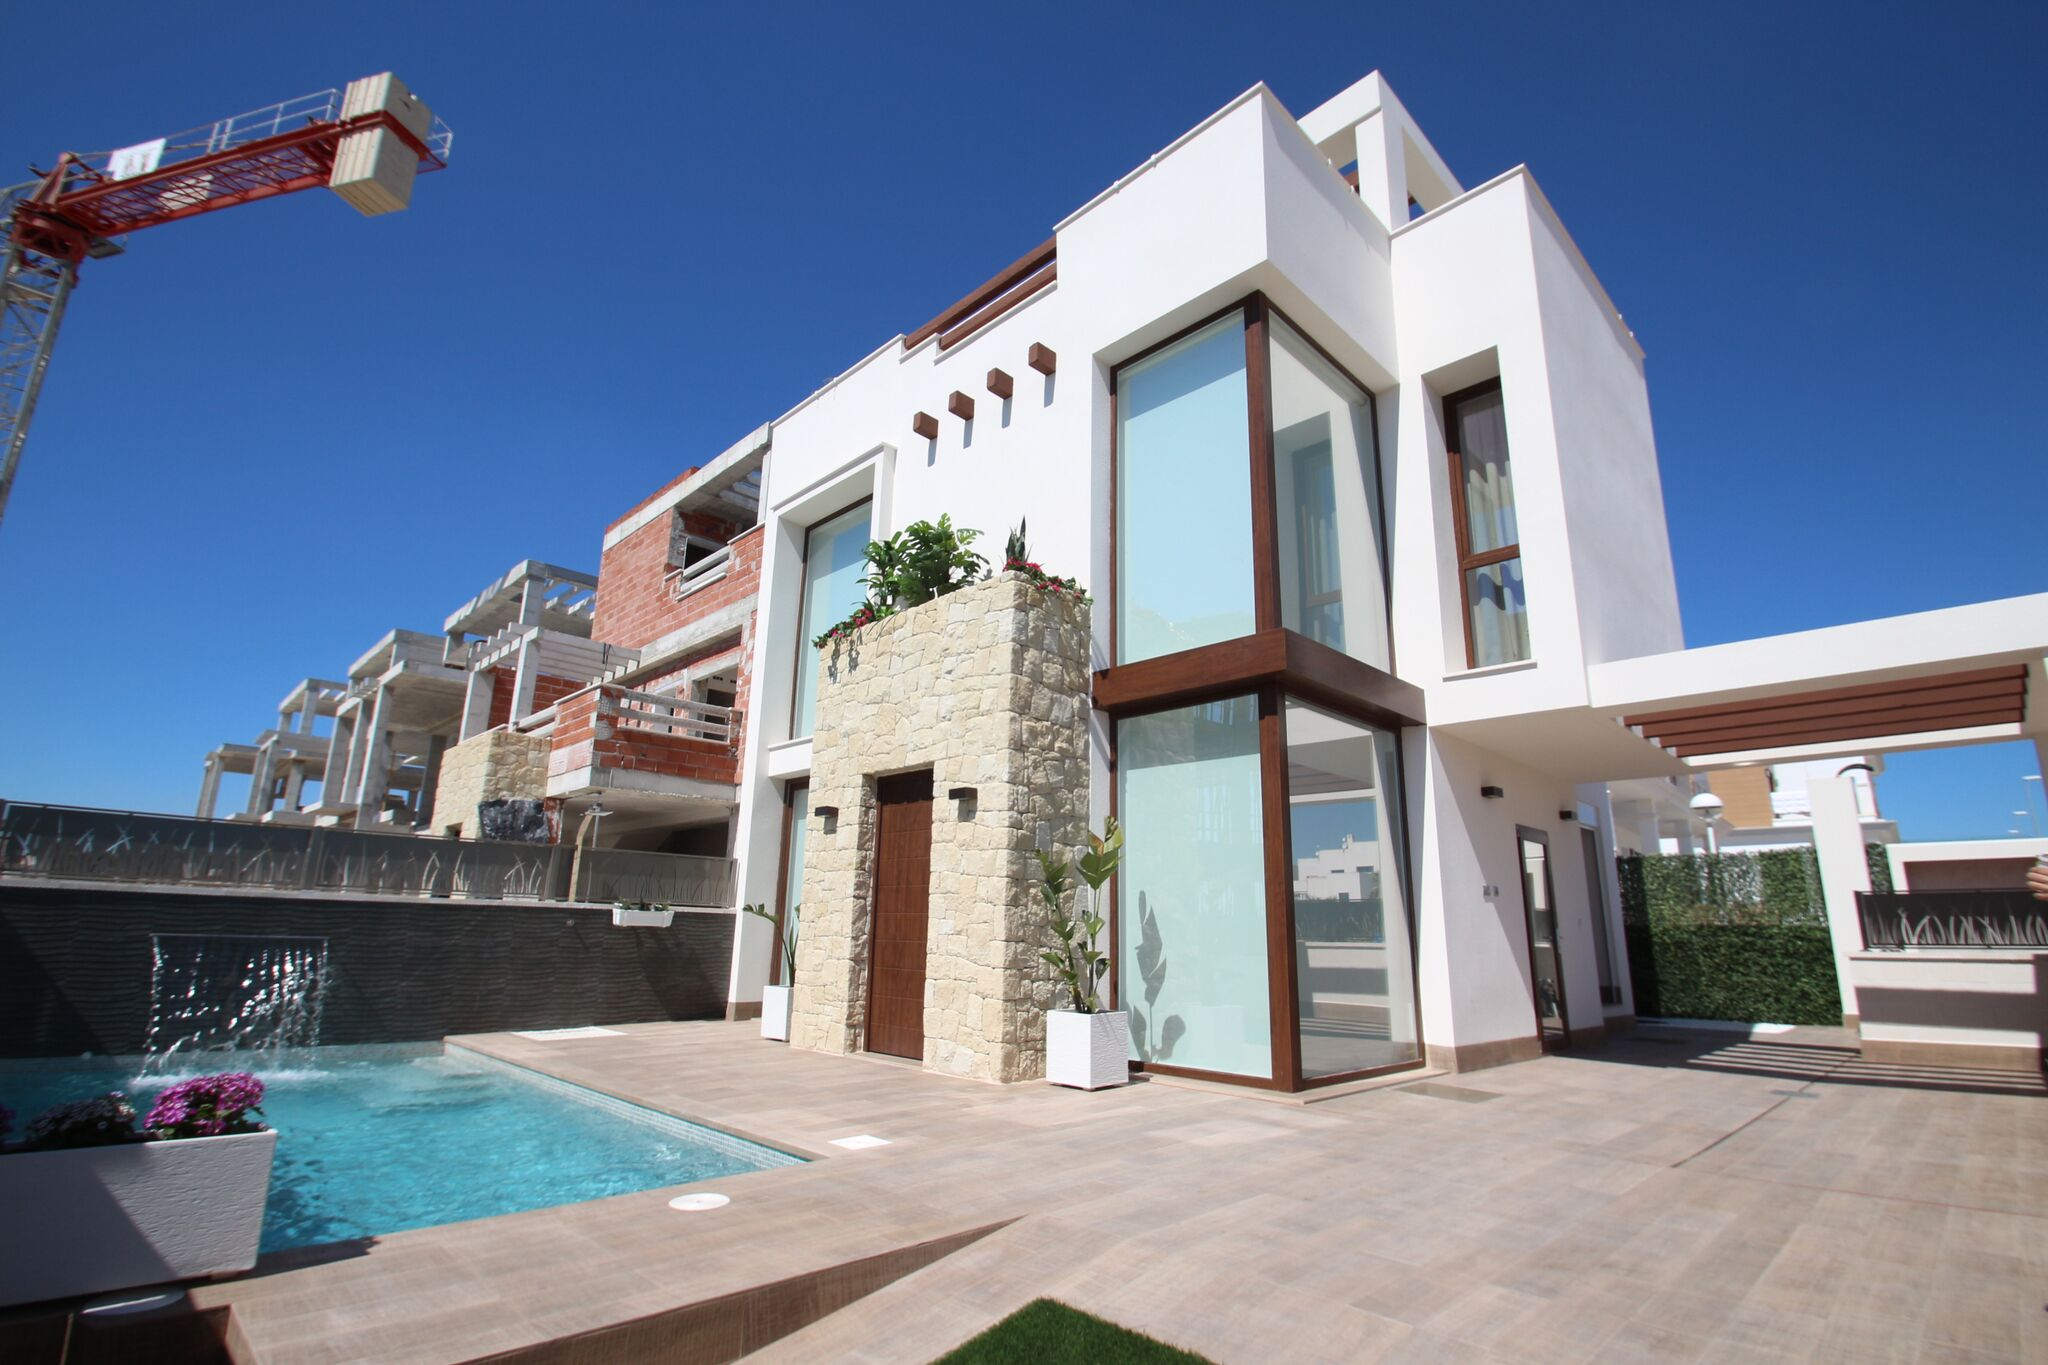 New Detached Luxury Villa in Guardamar Del Segura